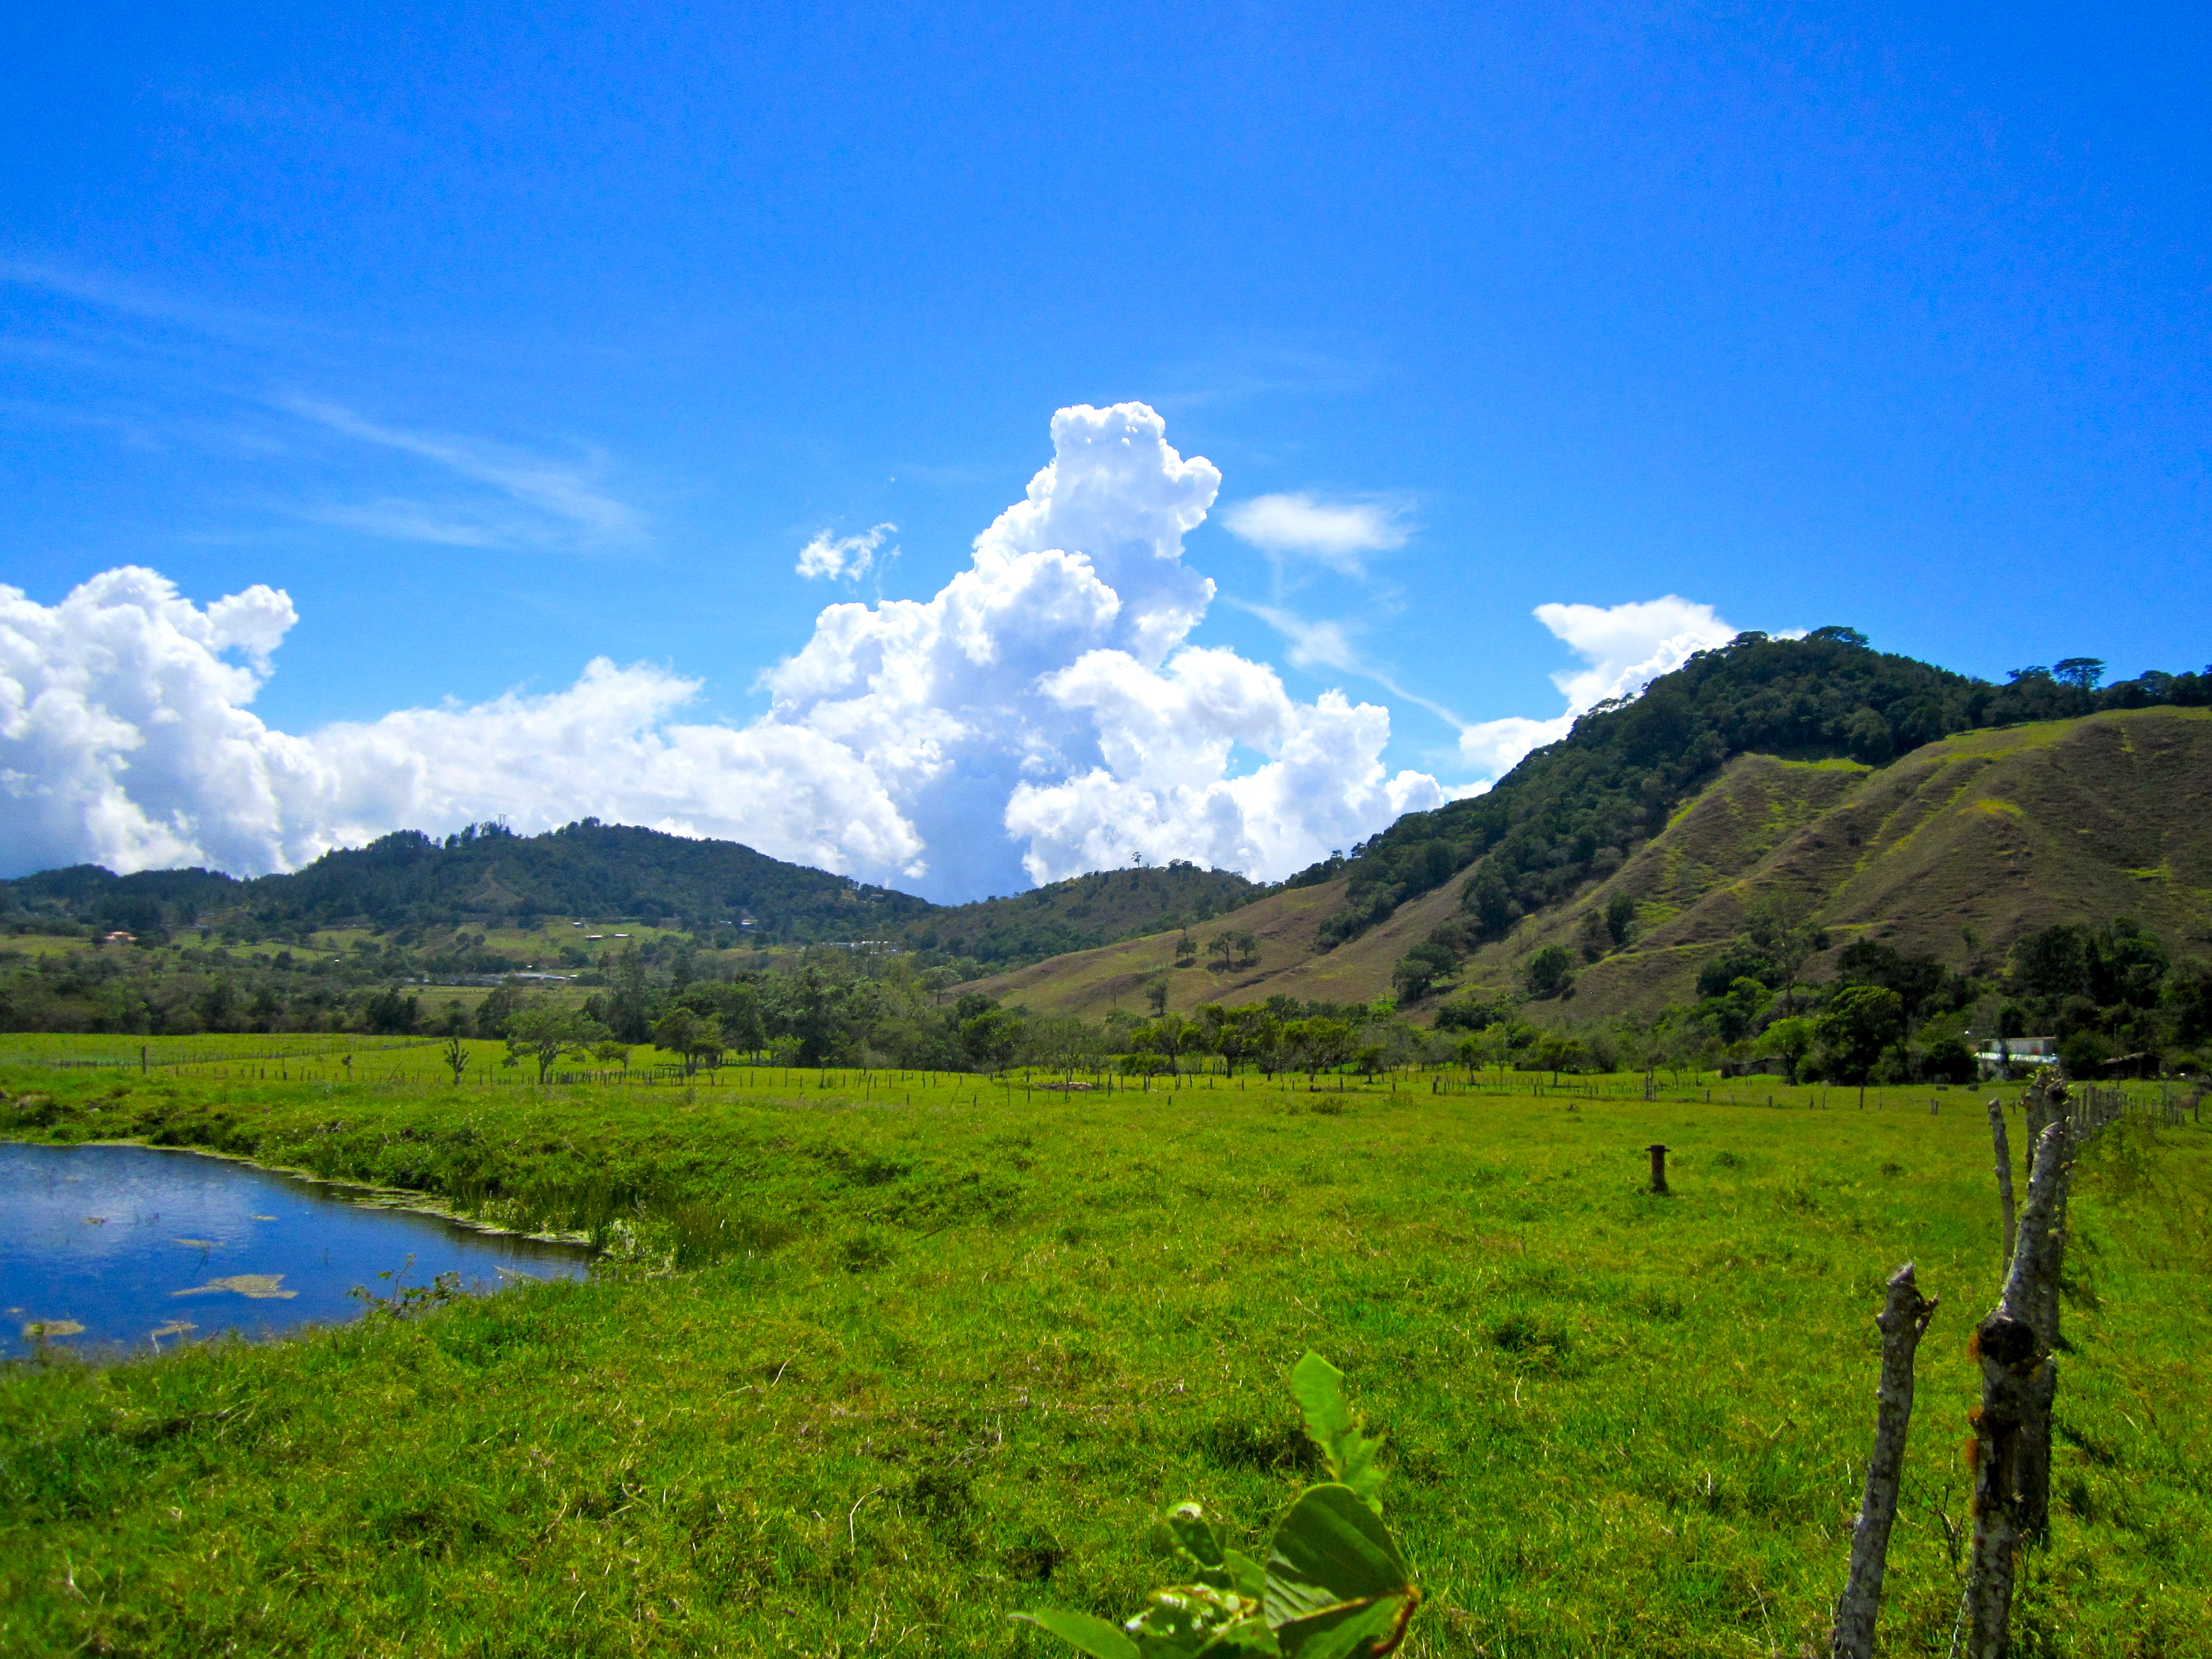 The little switzerland of panama volcan where the temperature and